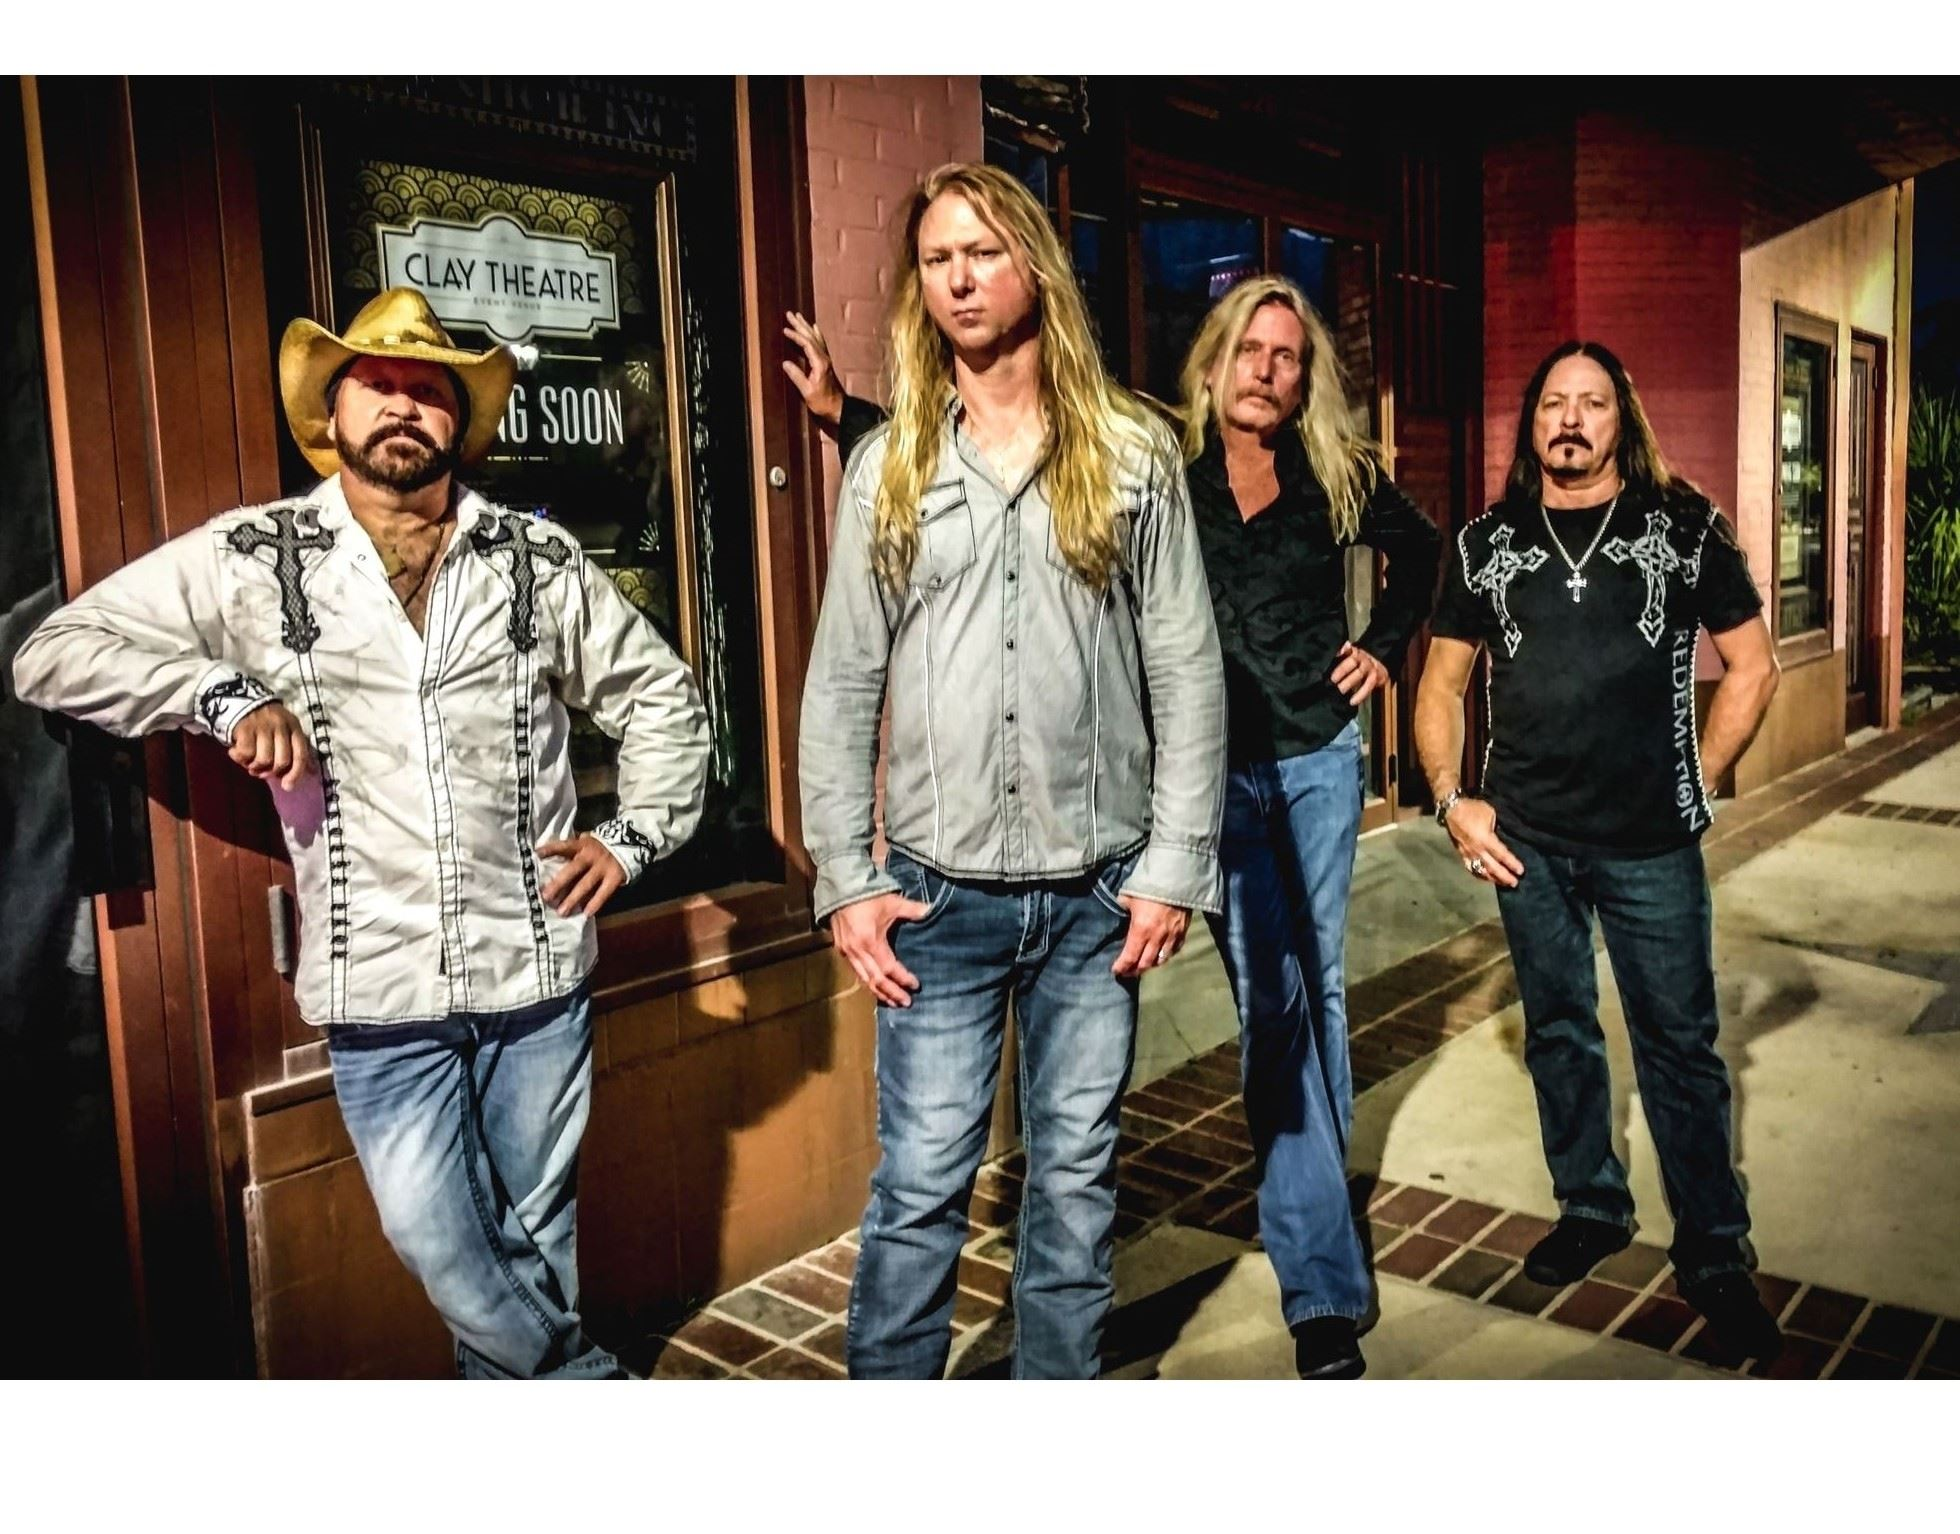 Opening Act - The Curt Towne Band